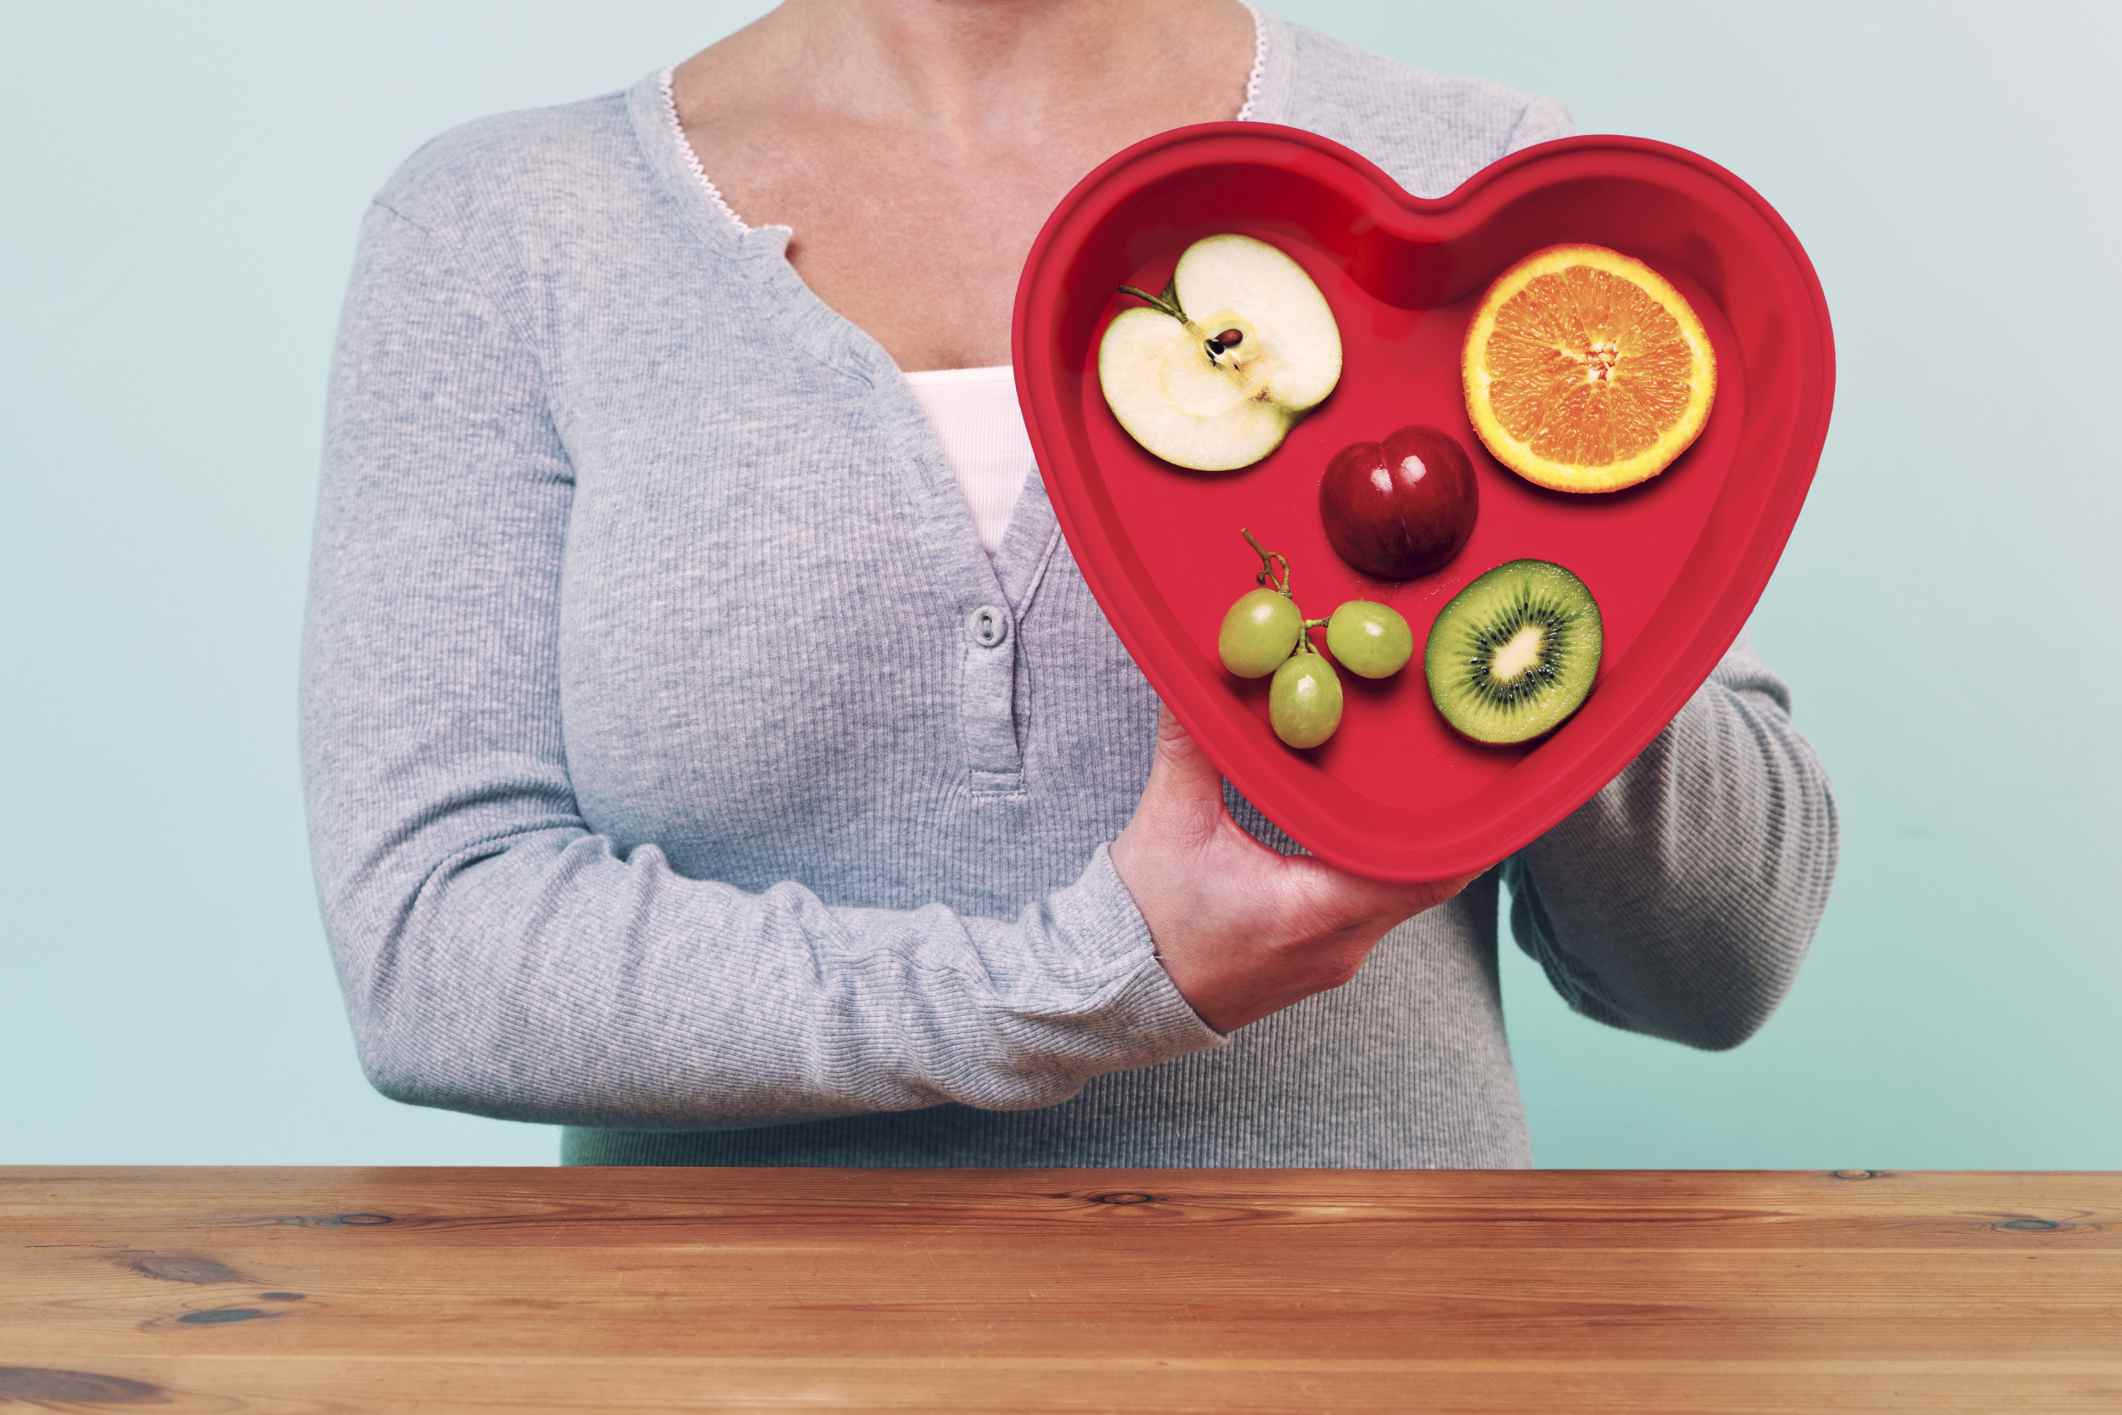 woman holding a red heart-shaped dish with different fruits on it